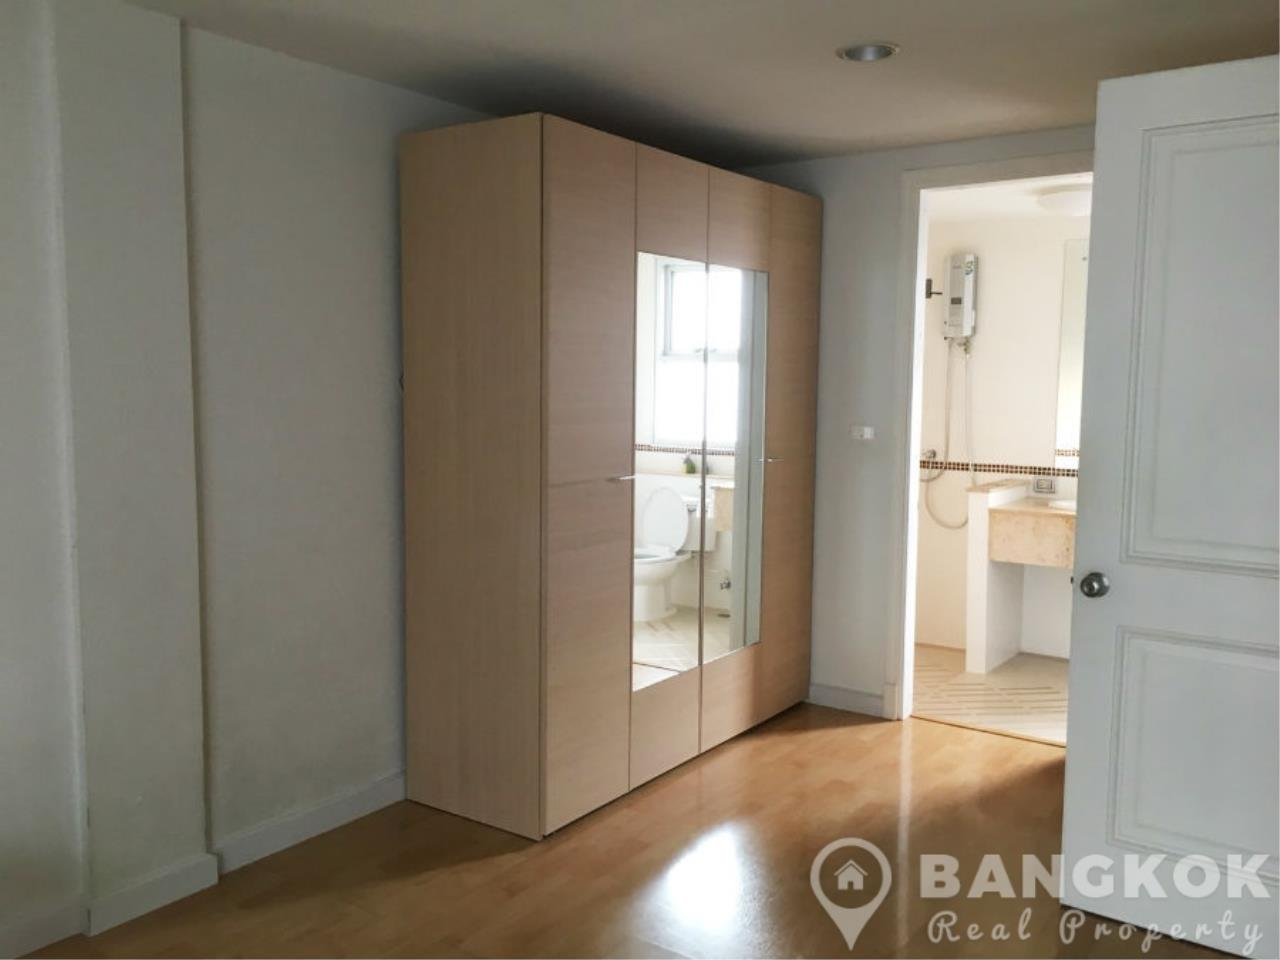 Bangkok Real Property Agency's Modern Udomsuk Townhouse with 3 Bed 3 Bath in Secure Compound 5